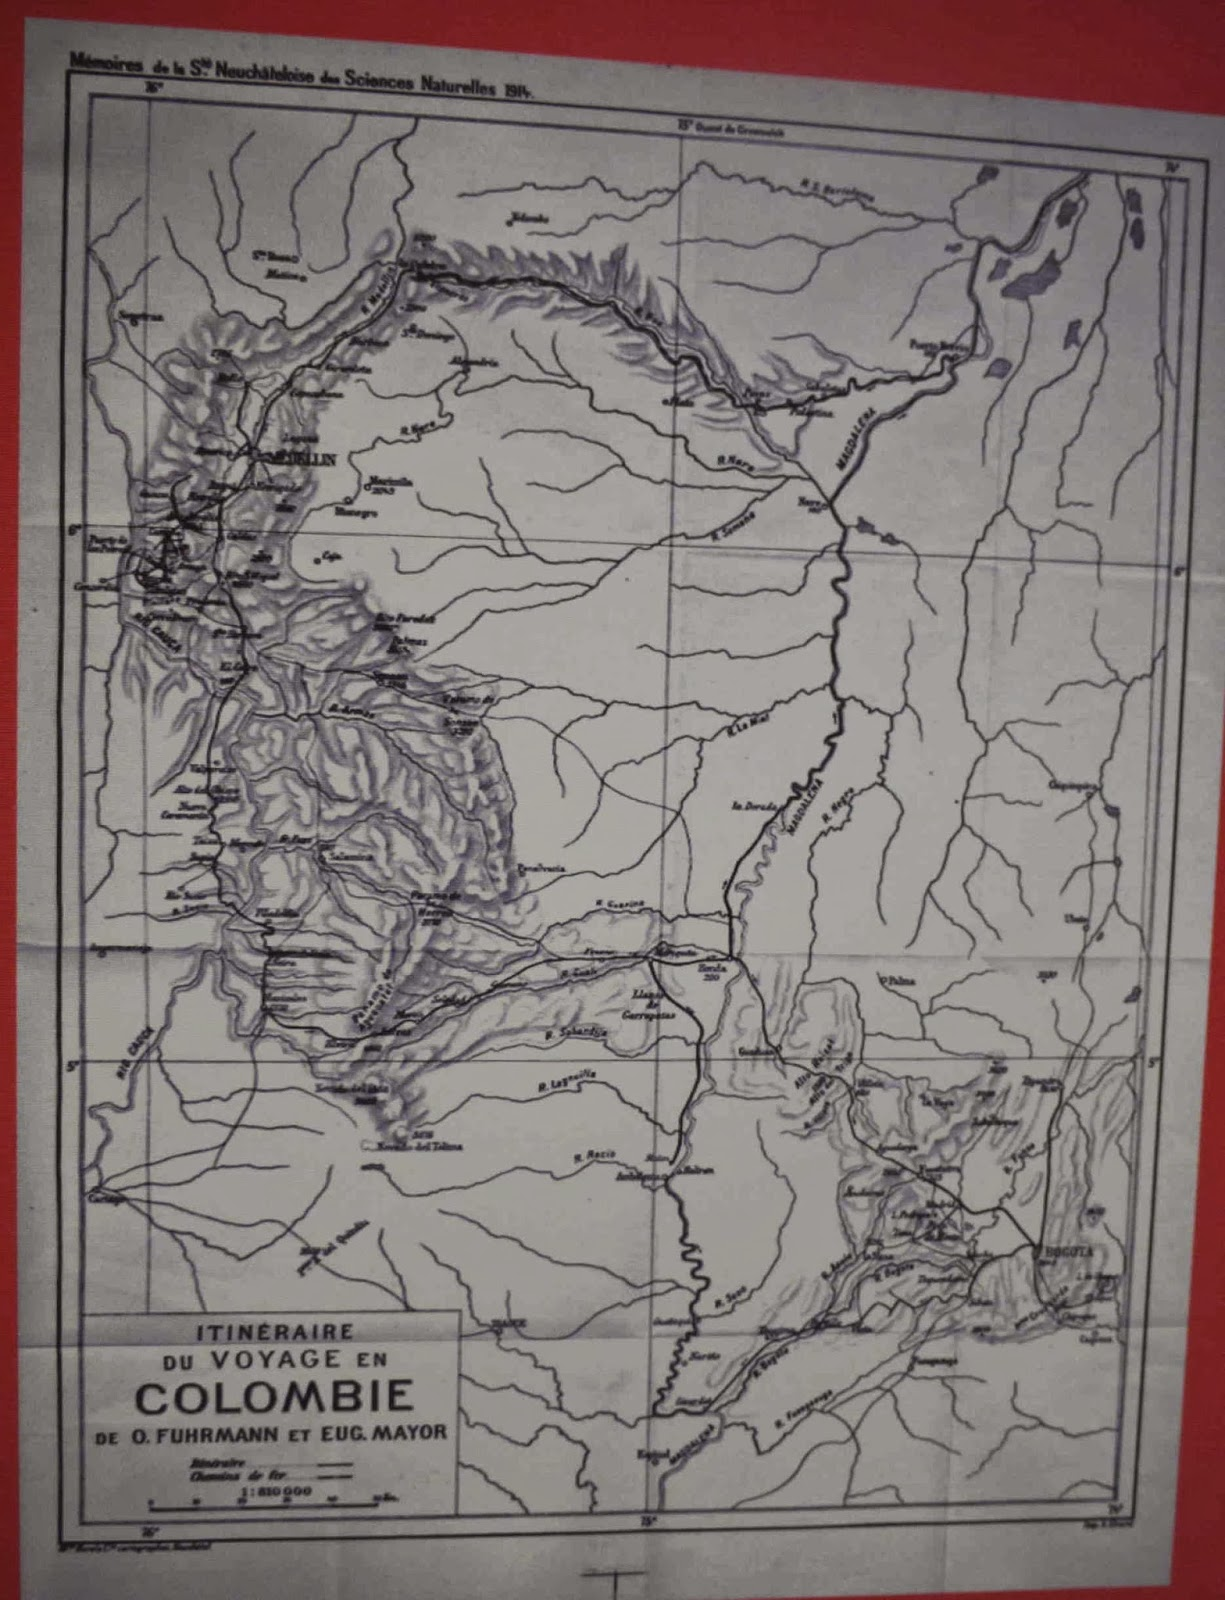 Mikes Bogota Blog The Helvetic Expedition And The Swiss In Colombia - Map us embassy bogota